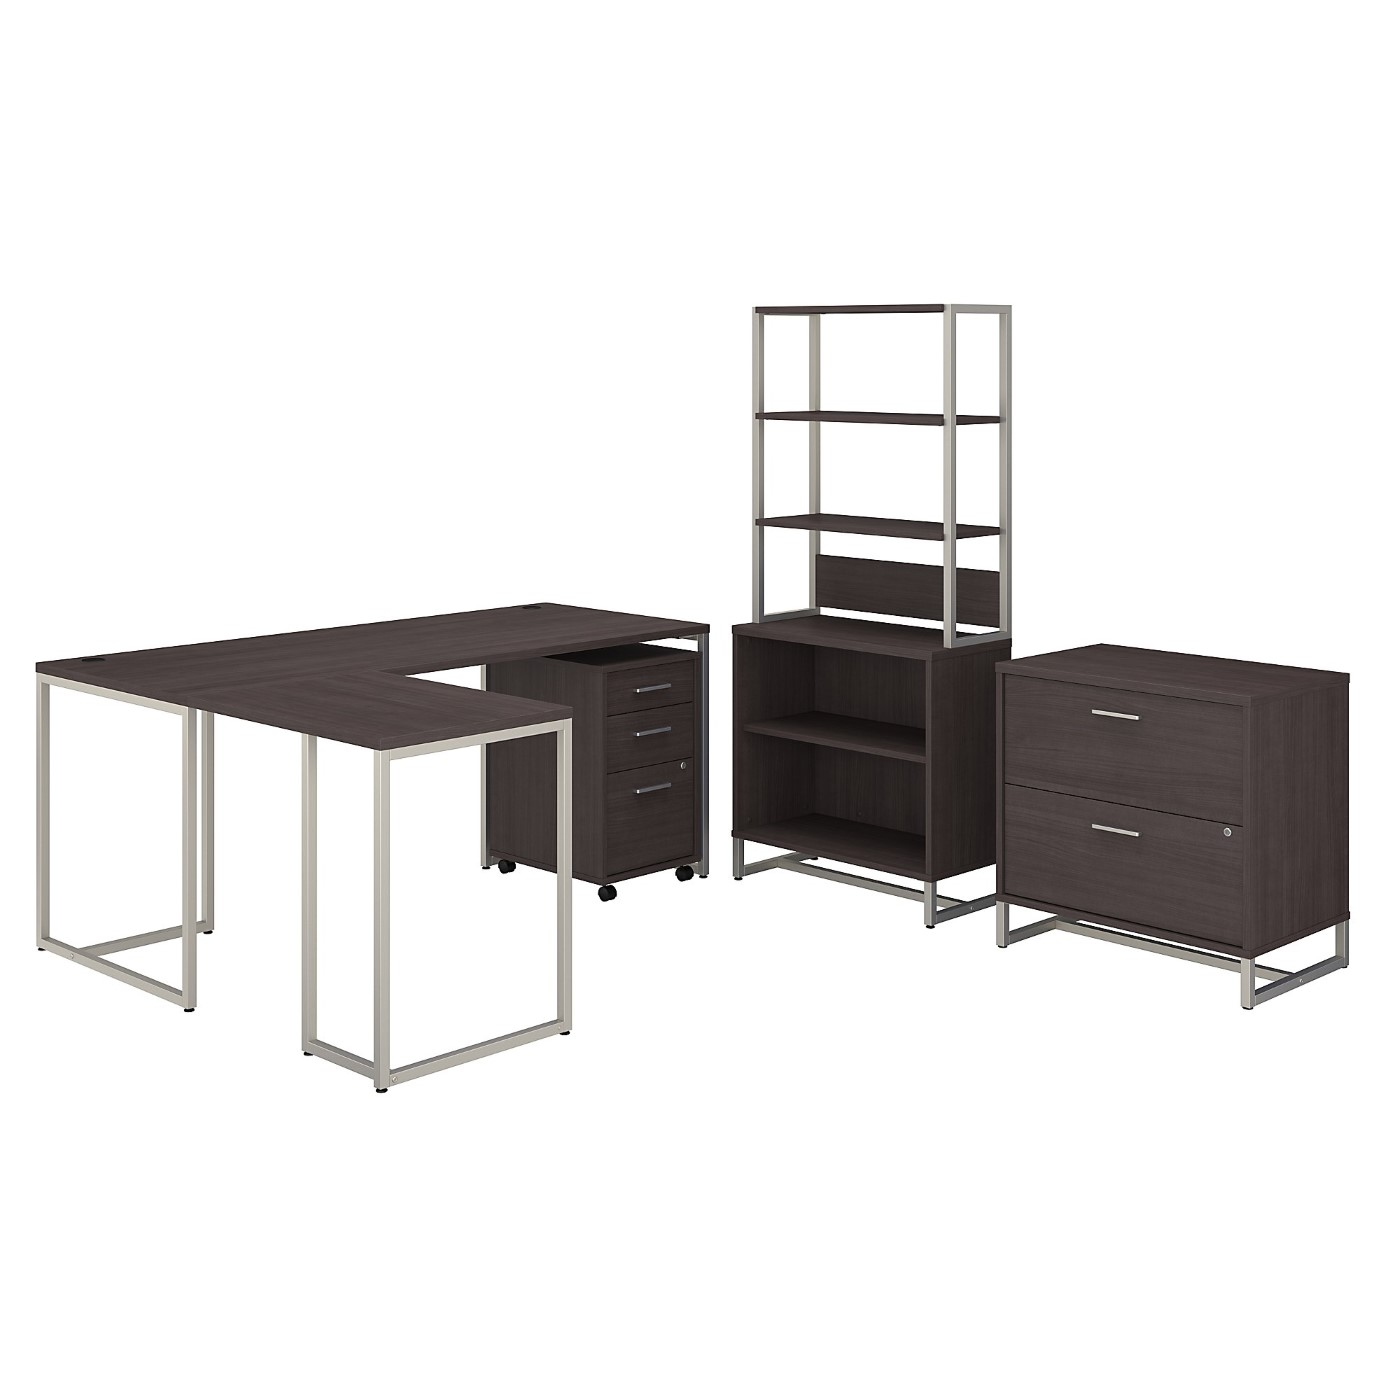 OFFICE BY KATHY IRELAND® METHOD 72W L SHAPED DESK WITH 30W RETURN, FILE CABINETS AND BOOKCASE. FREE SHIPPING